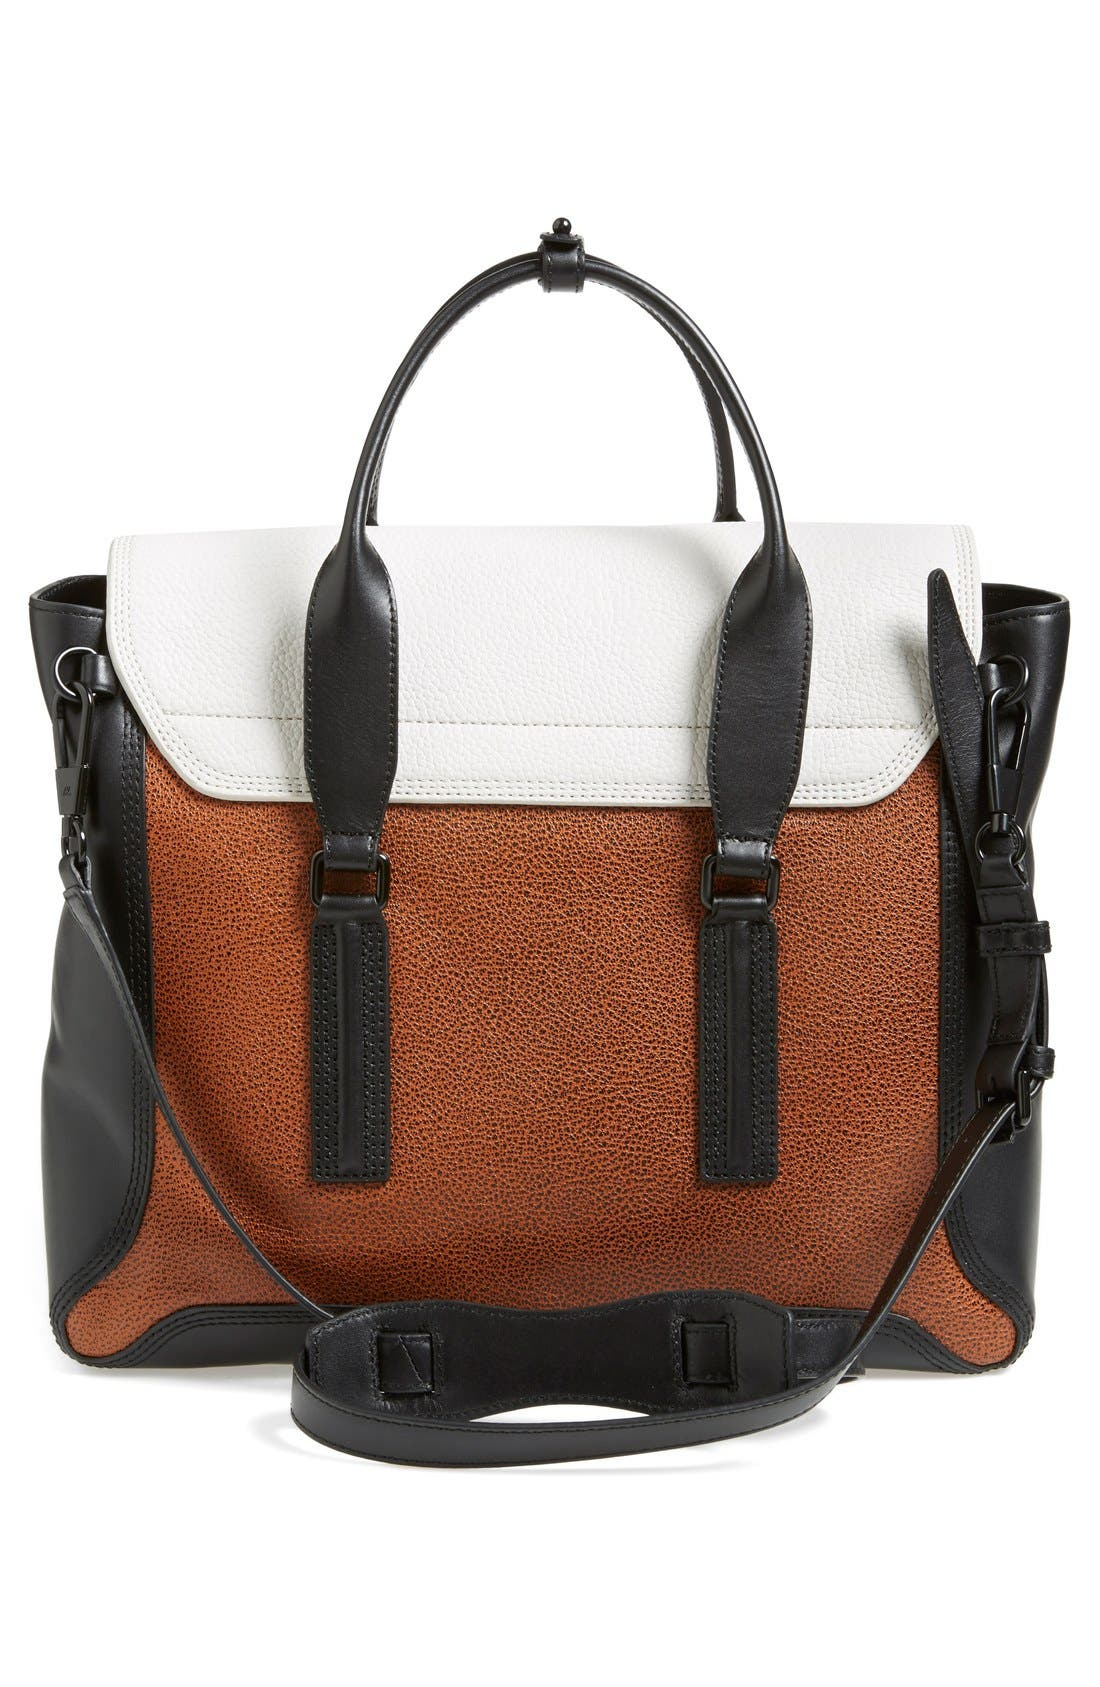 Alternate Image 3  - 3.1 Phillip Lim 'Large Pashli' Leather Satchel